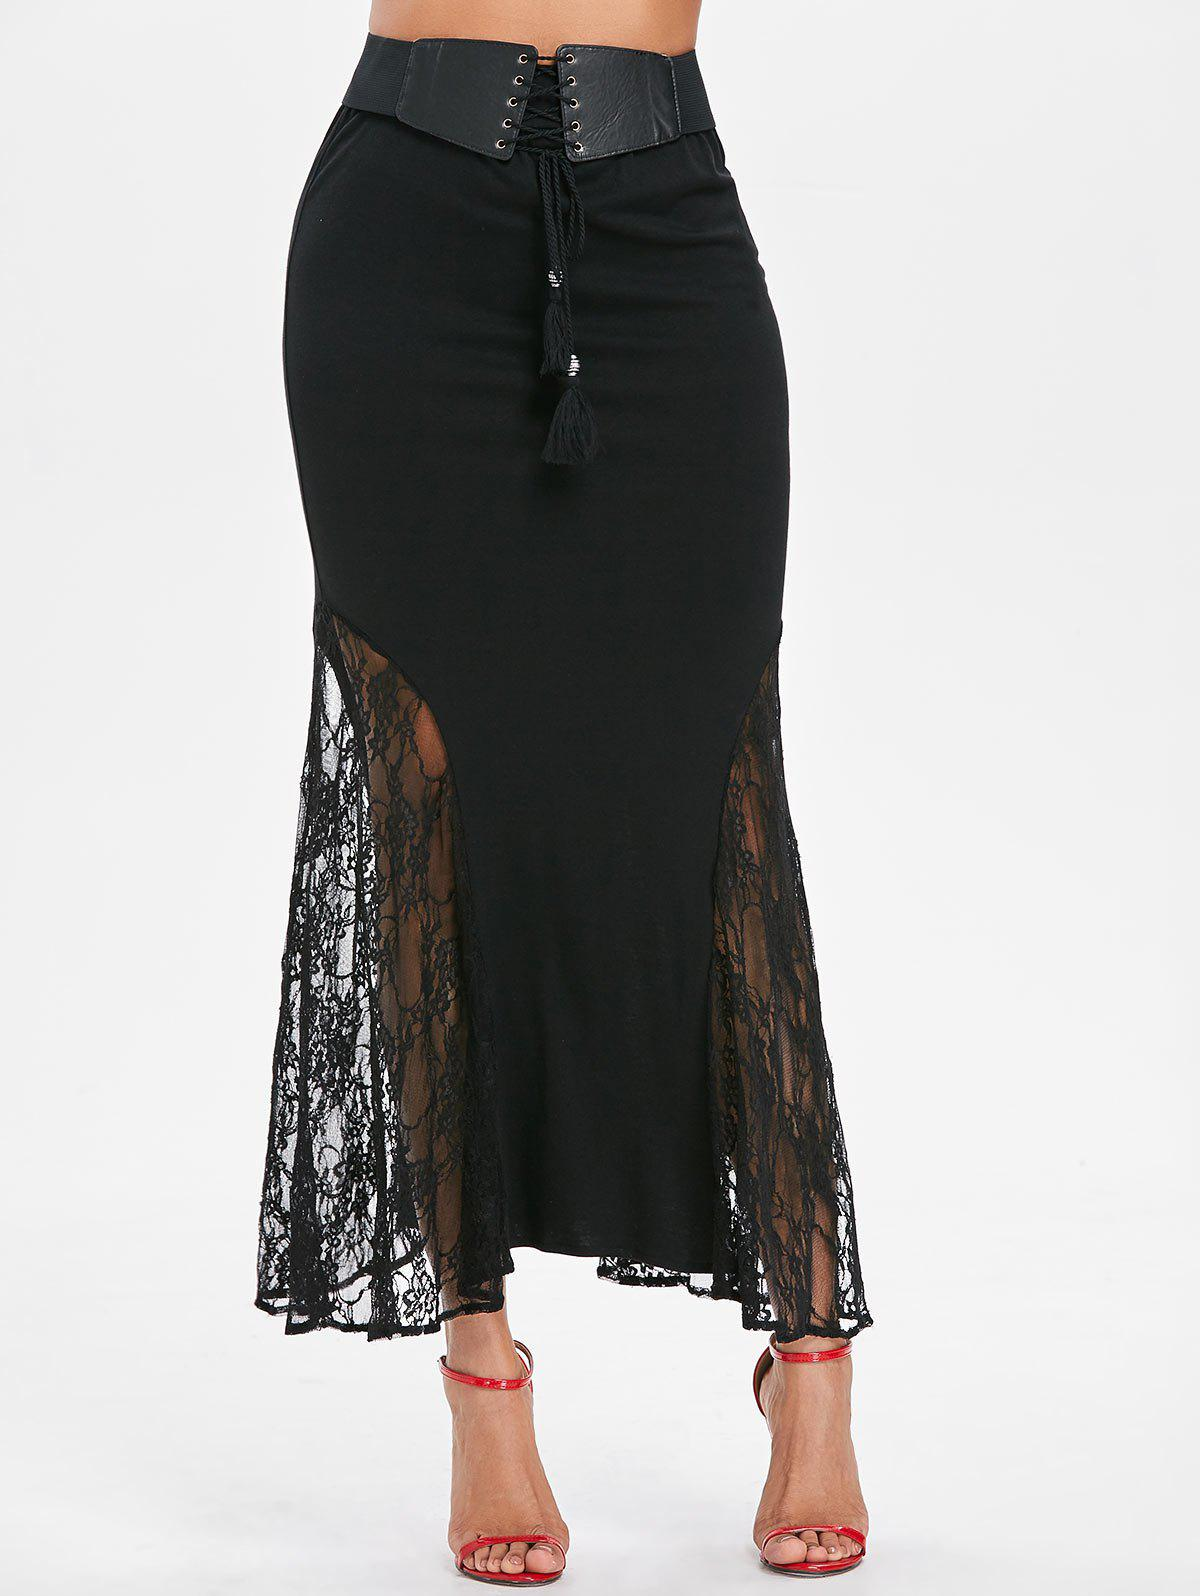 Lace Insert Long Mermaid Skirt - BLACK S